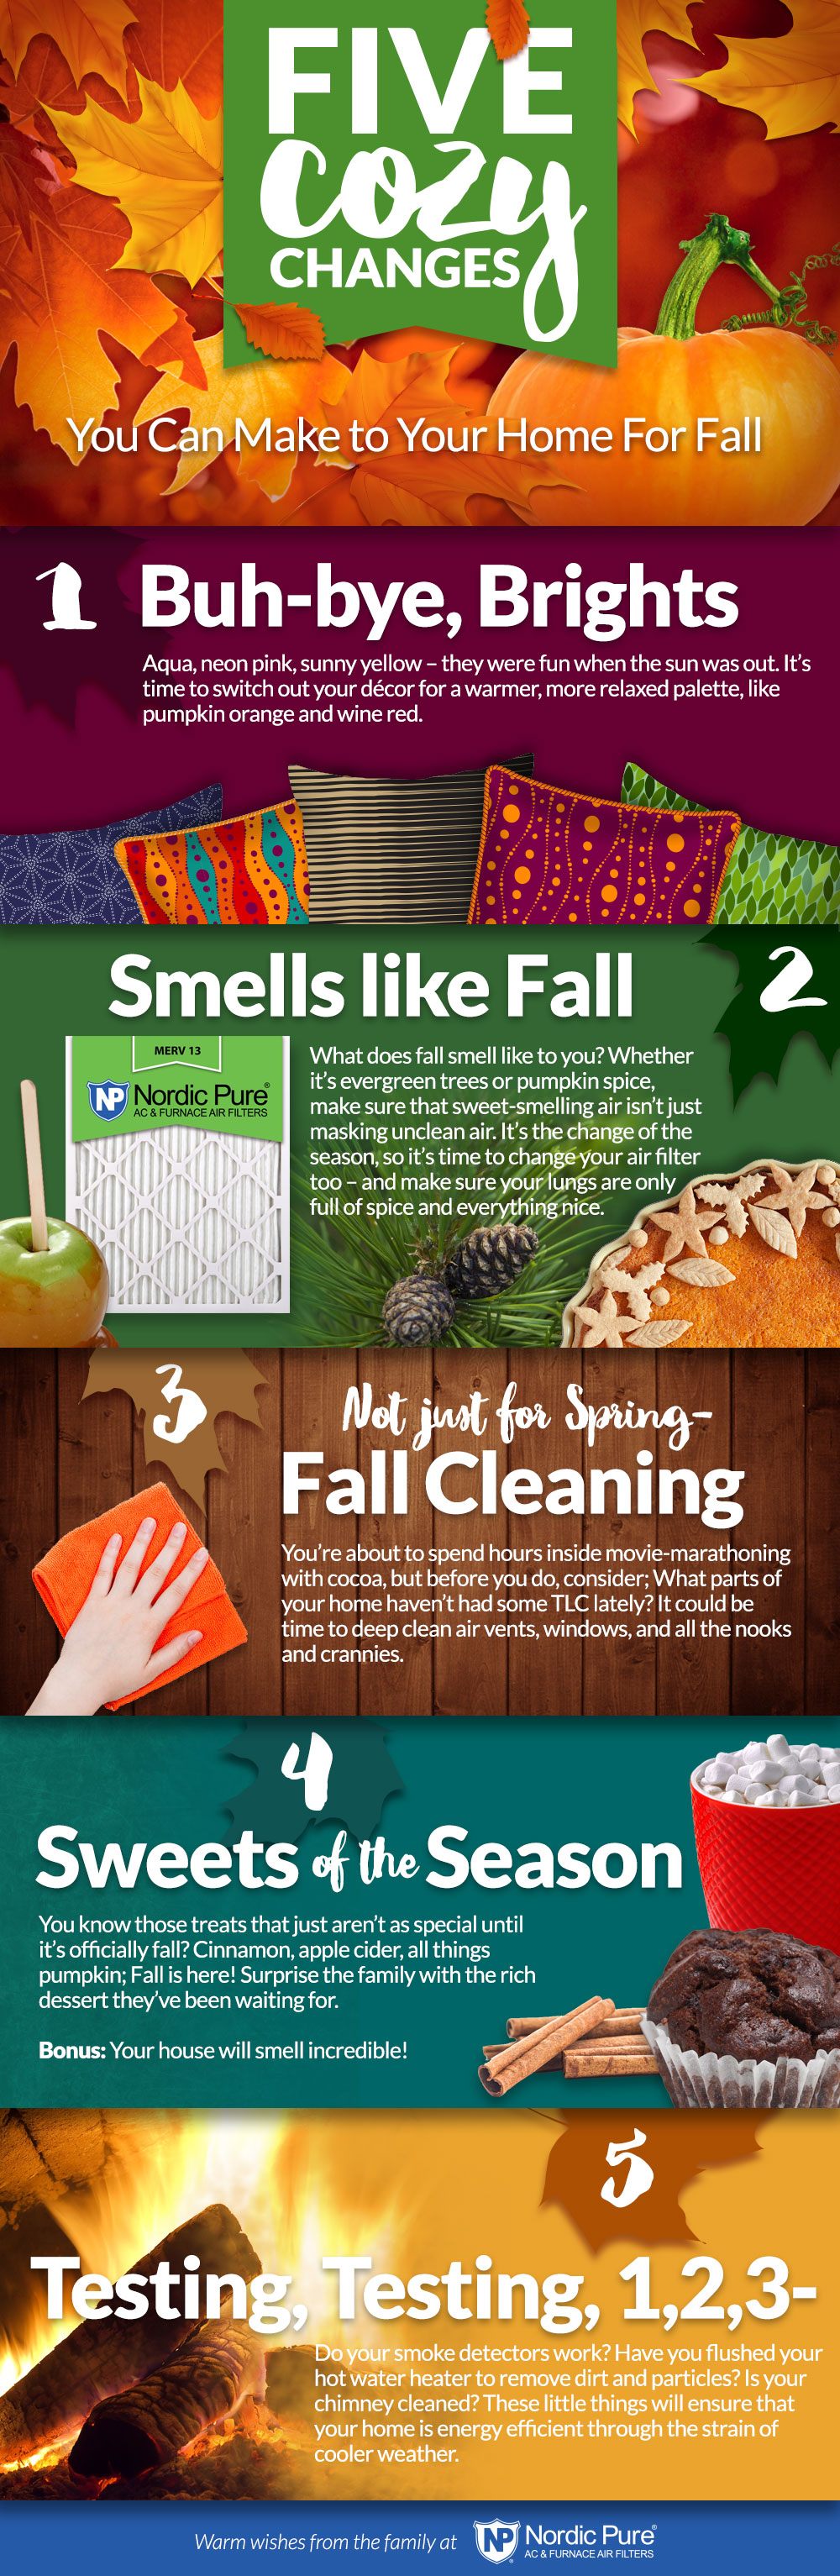 5 Cozy Changes for Fall! Get ready pumpkin spice fans!